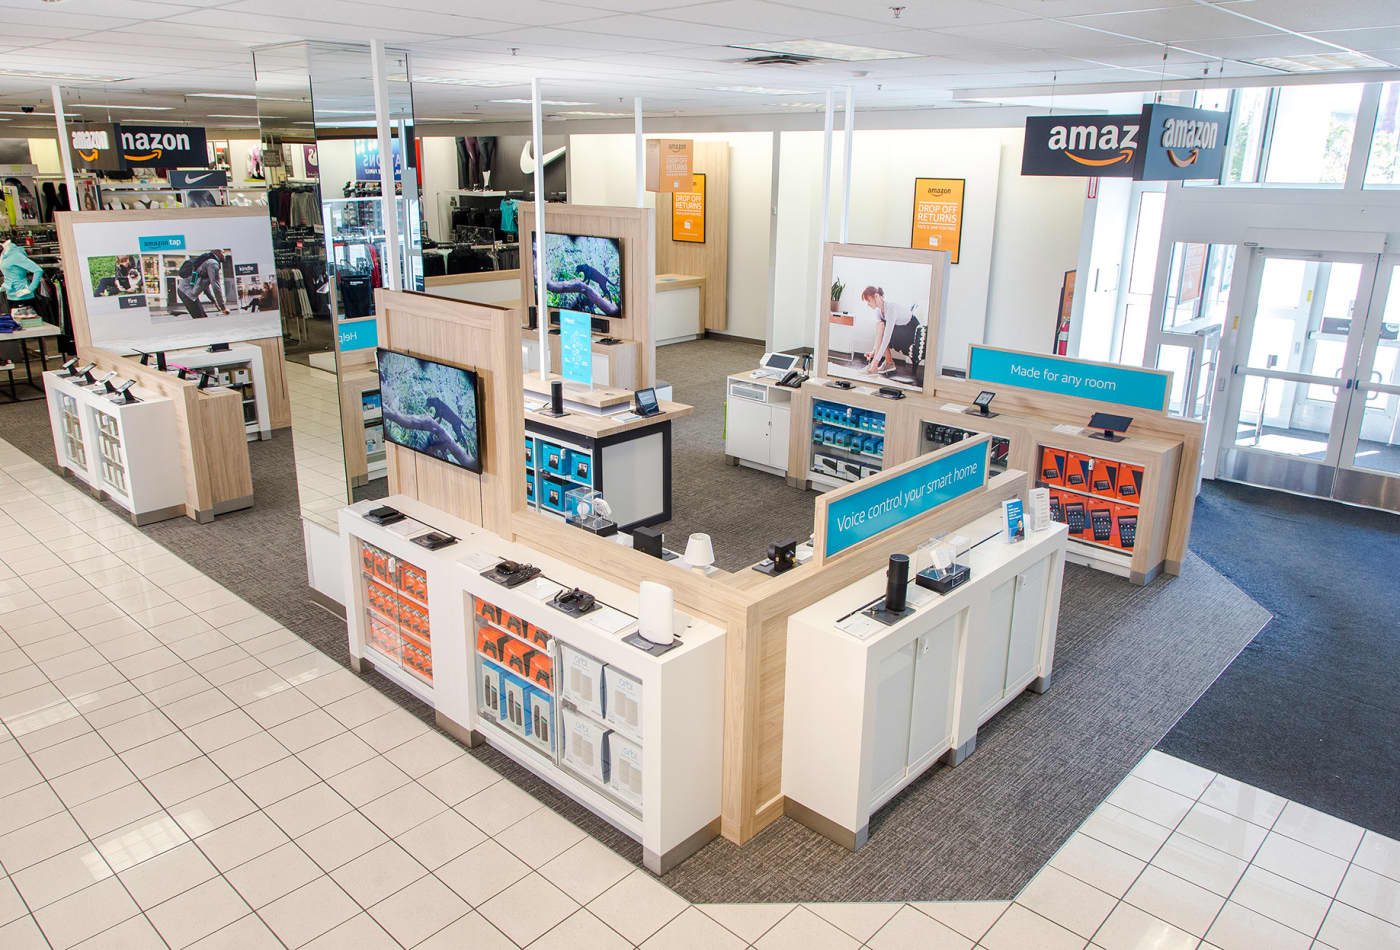 Kohl's is going to accept Amazon returns in all of its stores across the country, starting in July